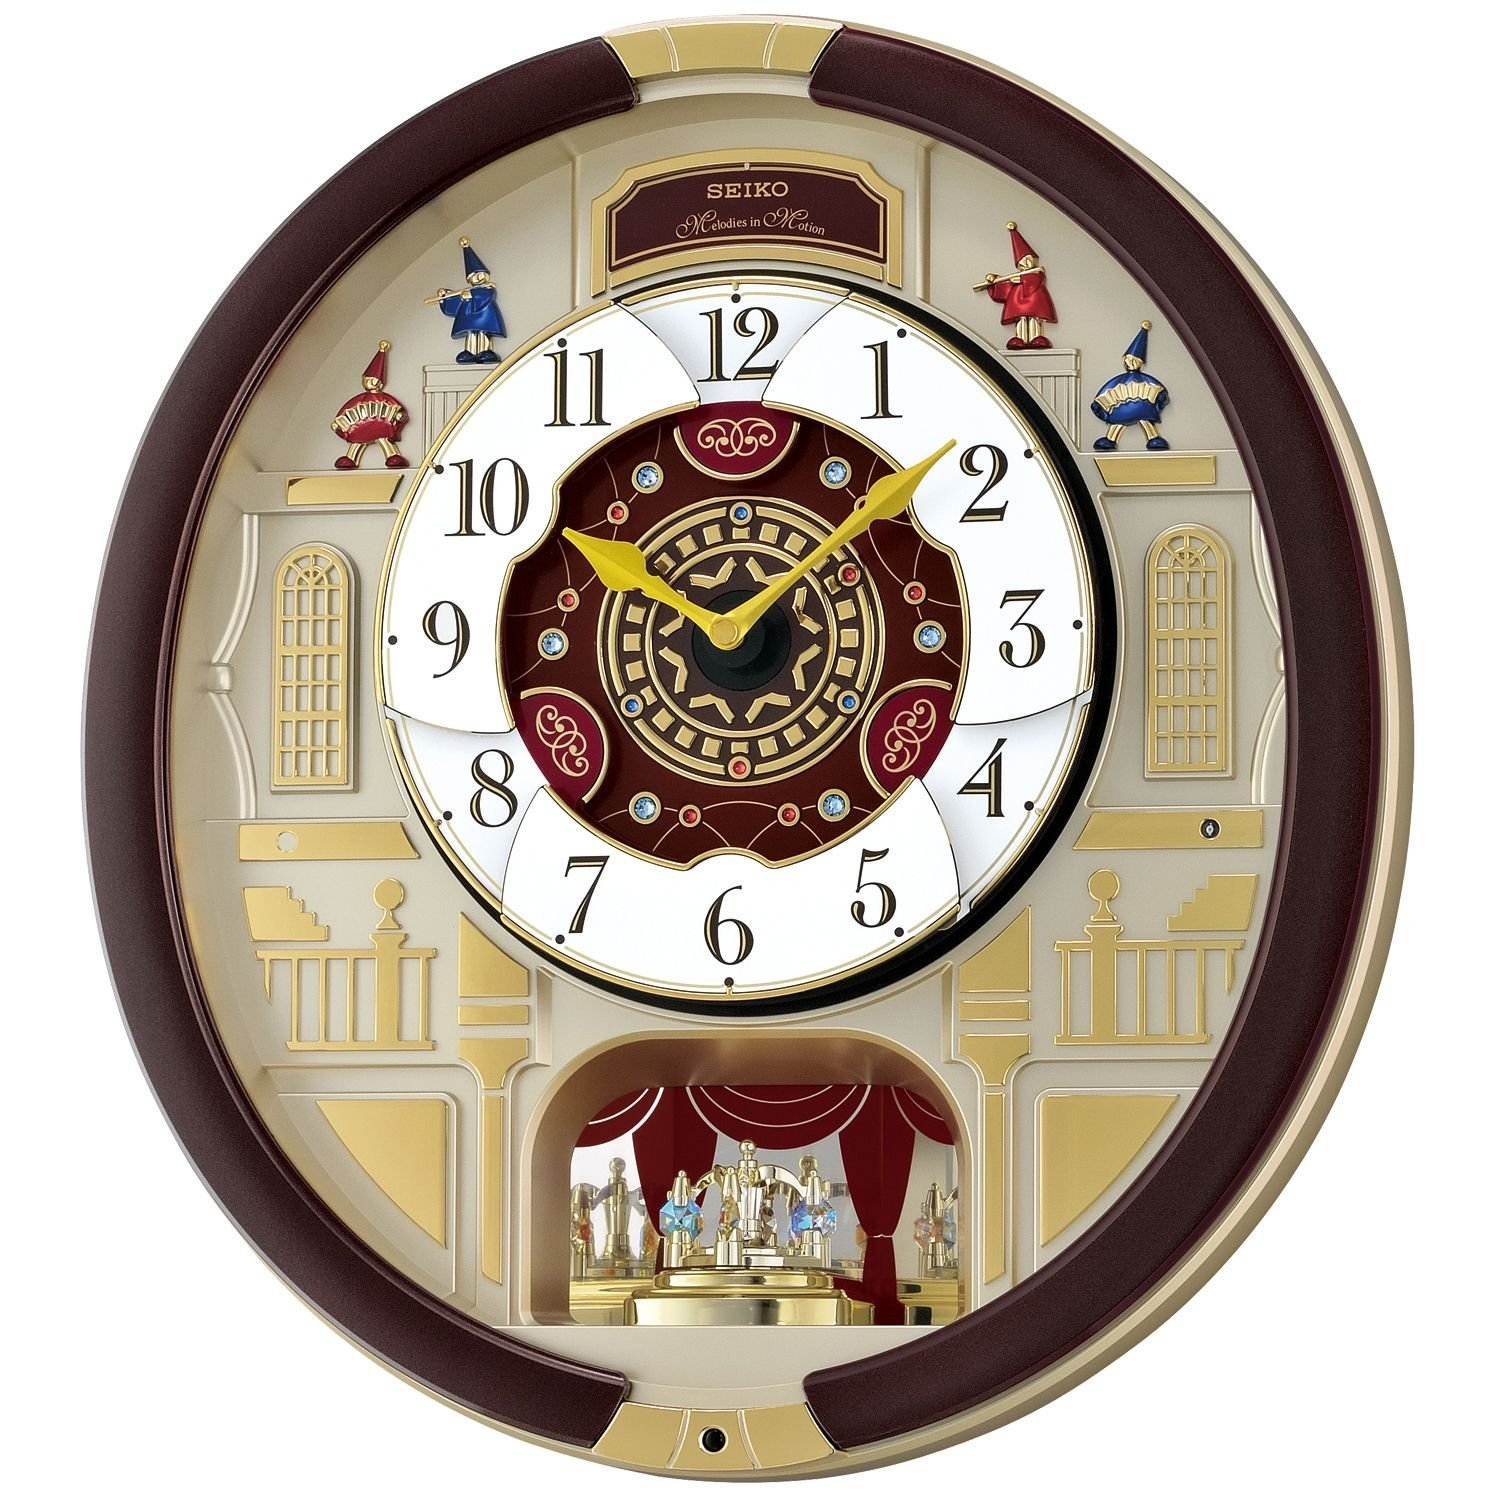 Seiko wall clock with swarovski seiko 24 melodies in motion musical wall clock with swarovski amipublicfo Images